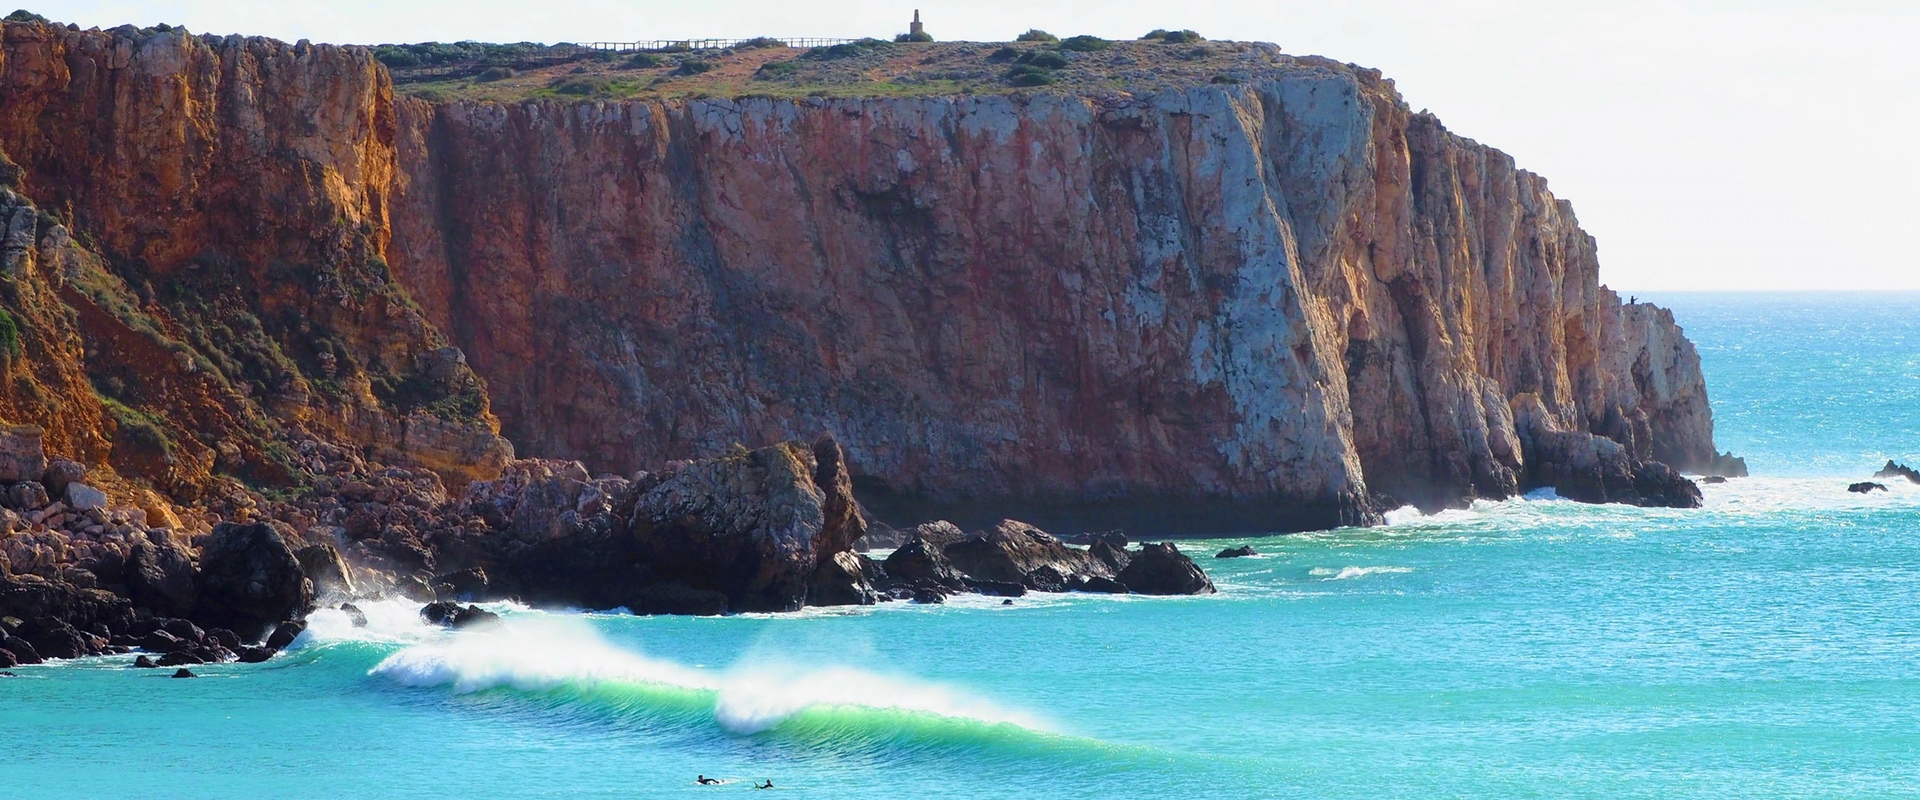 cover Surfguide Sagres1